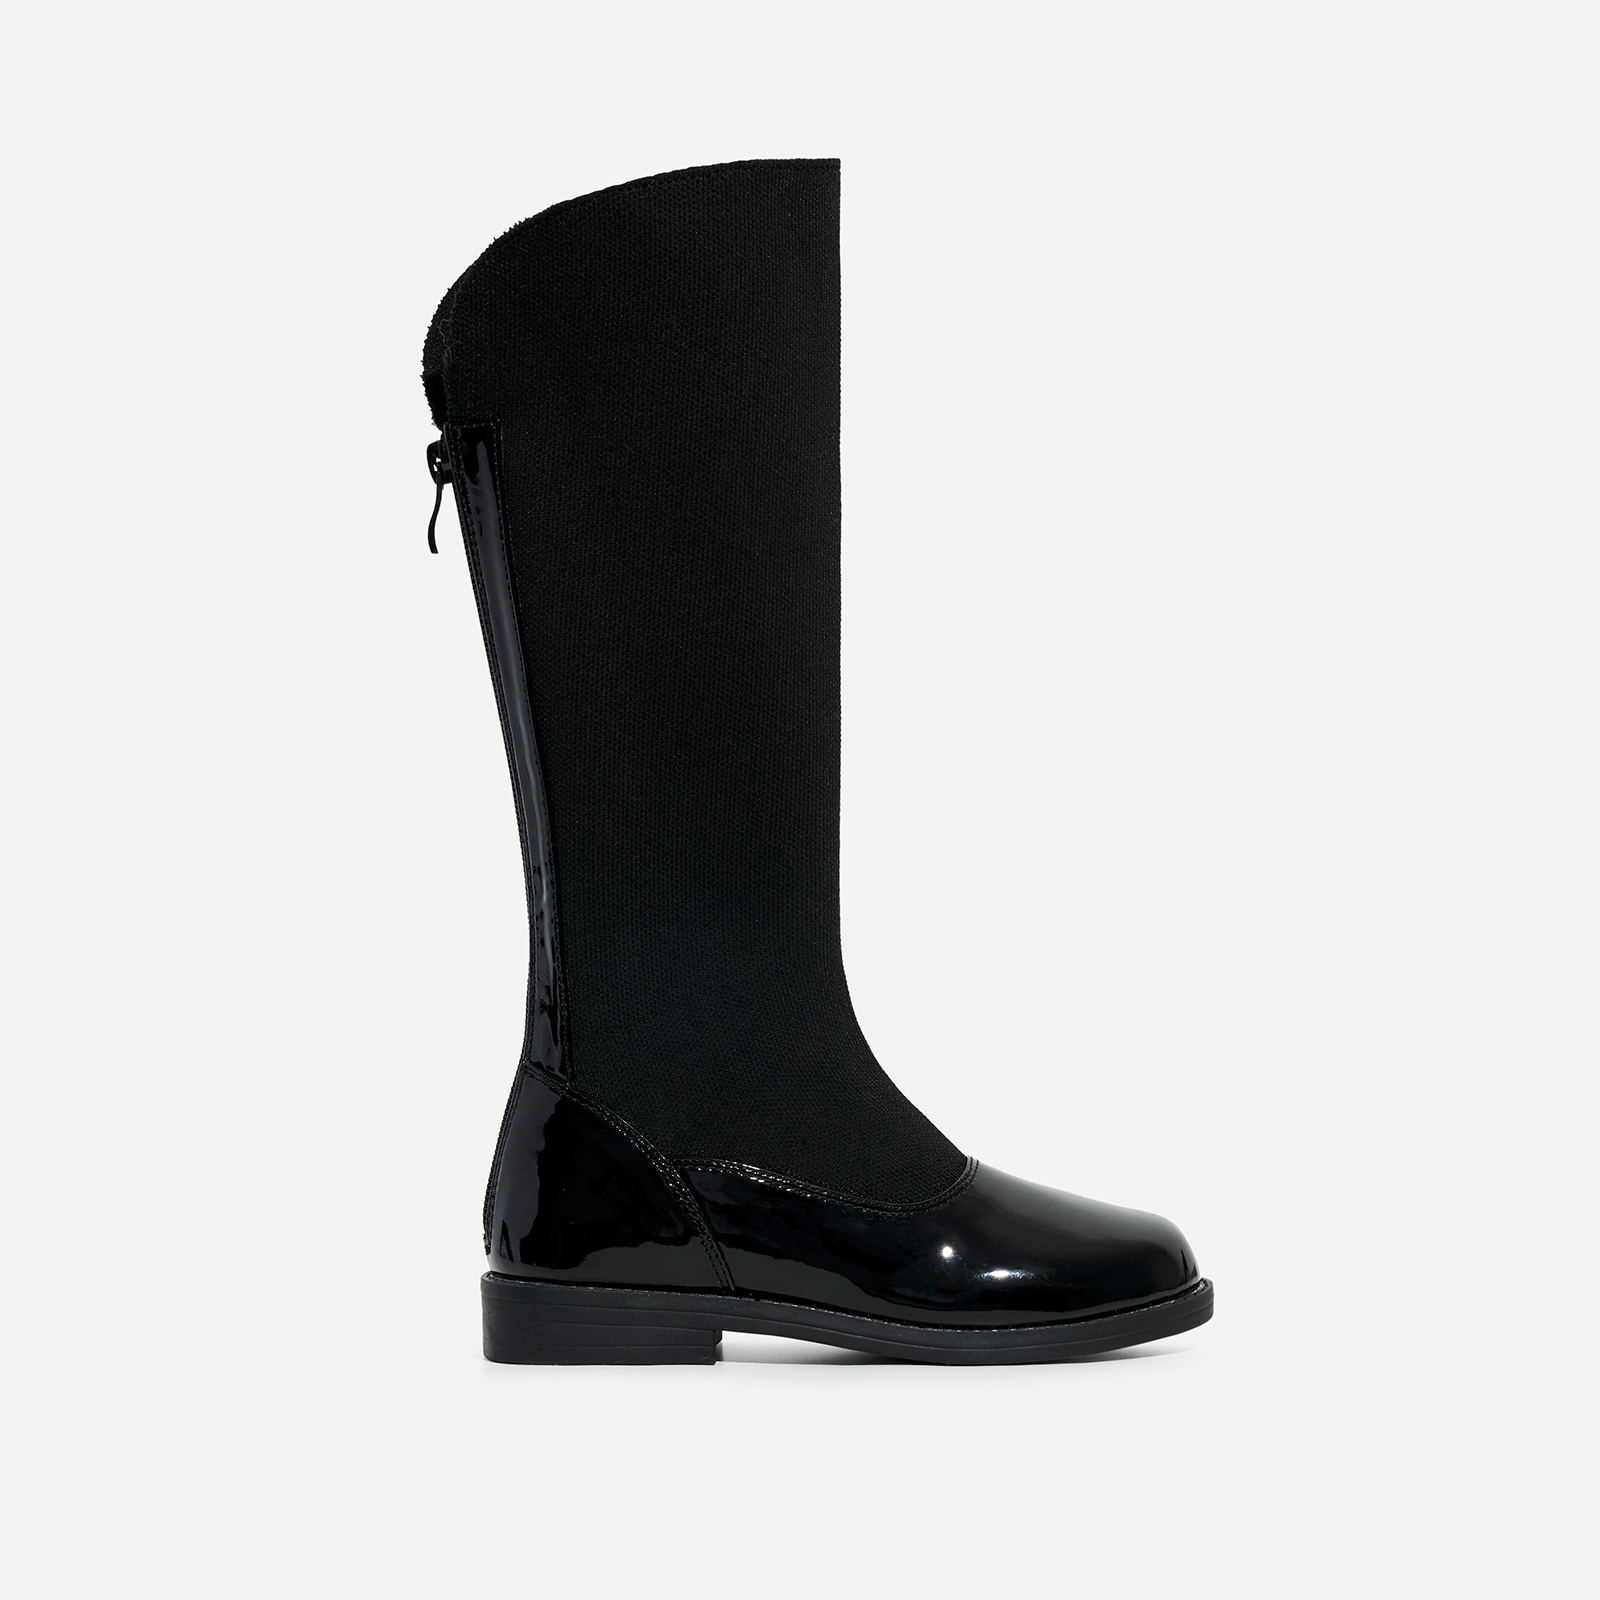 Bunny Girl's Knitted Detail Knee High Long Boot In Black Patent